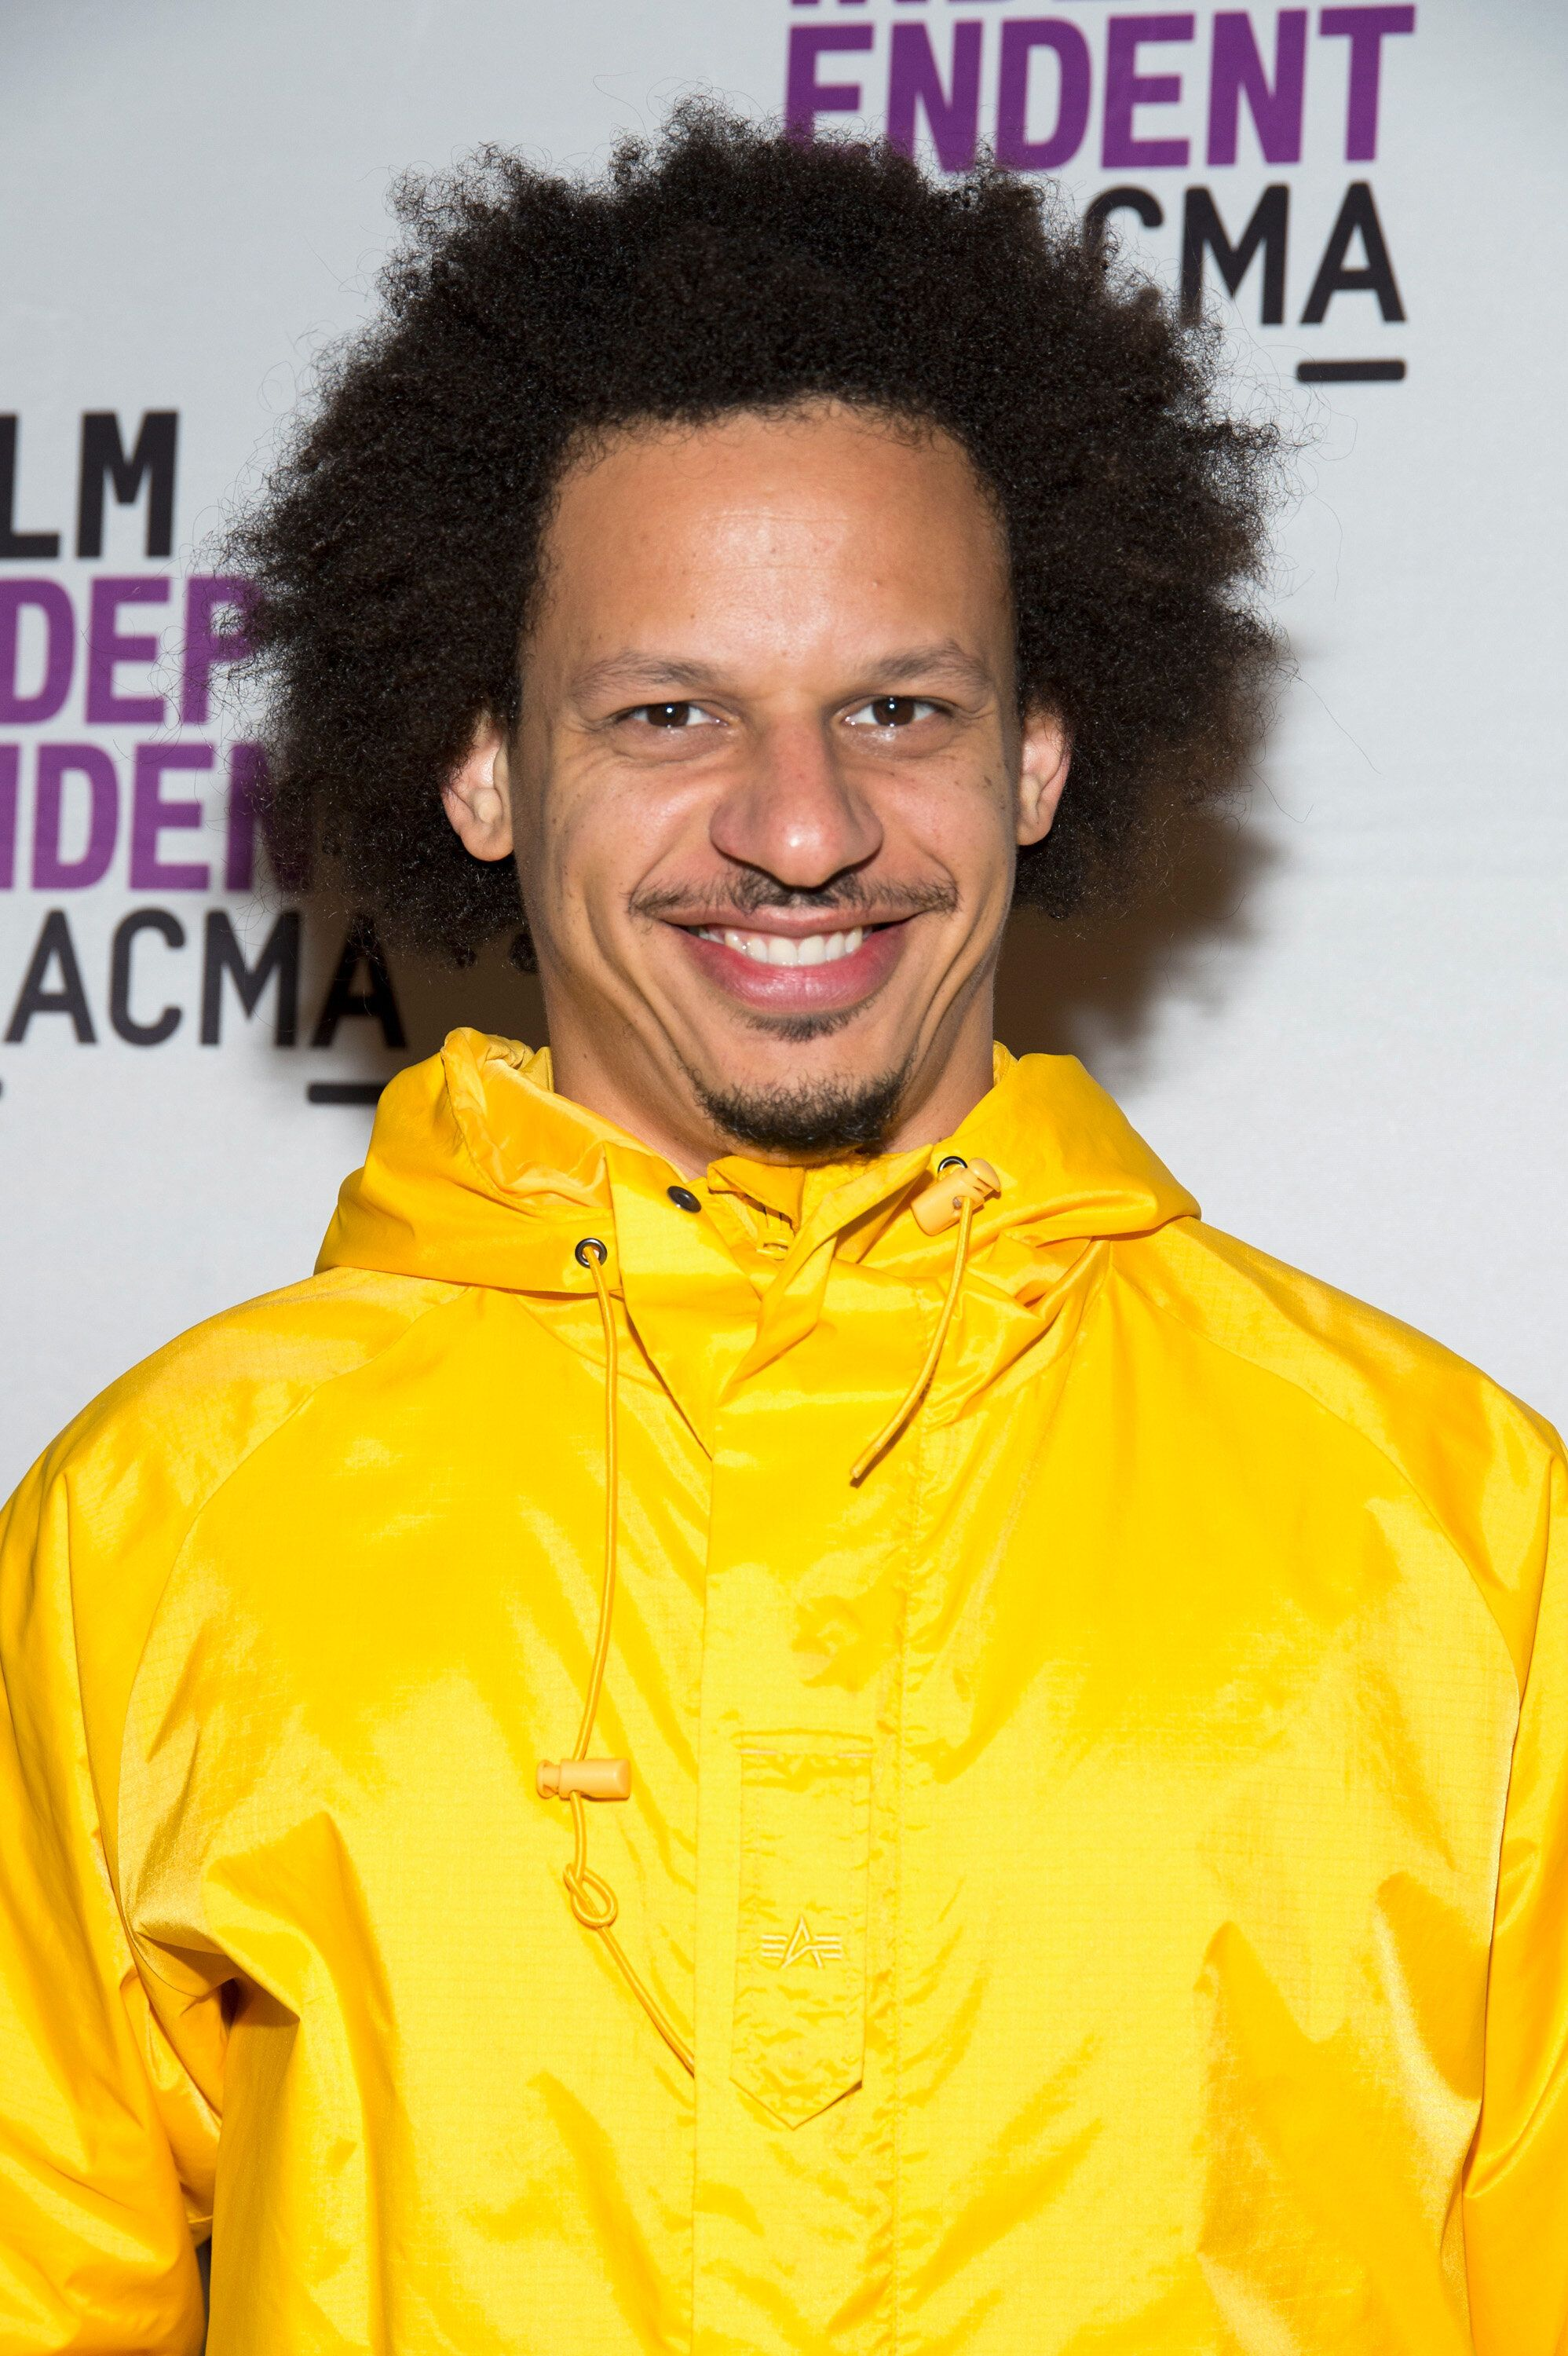 Eric Andre said he was in Atlanta to film his new movie.